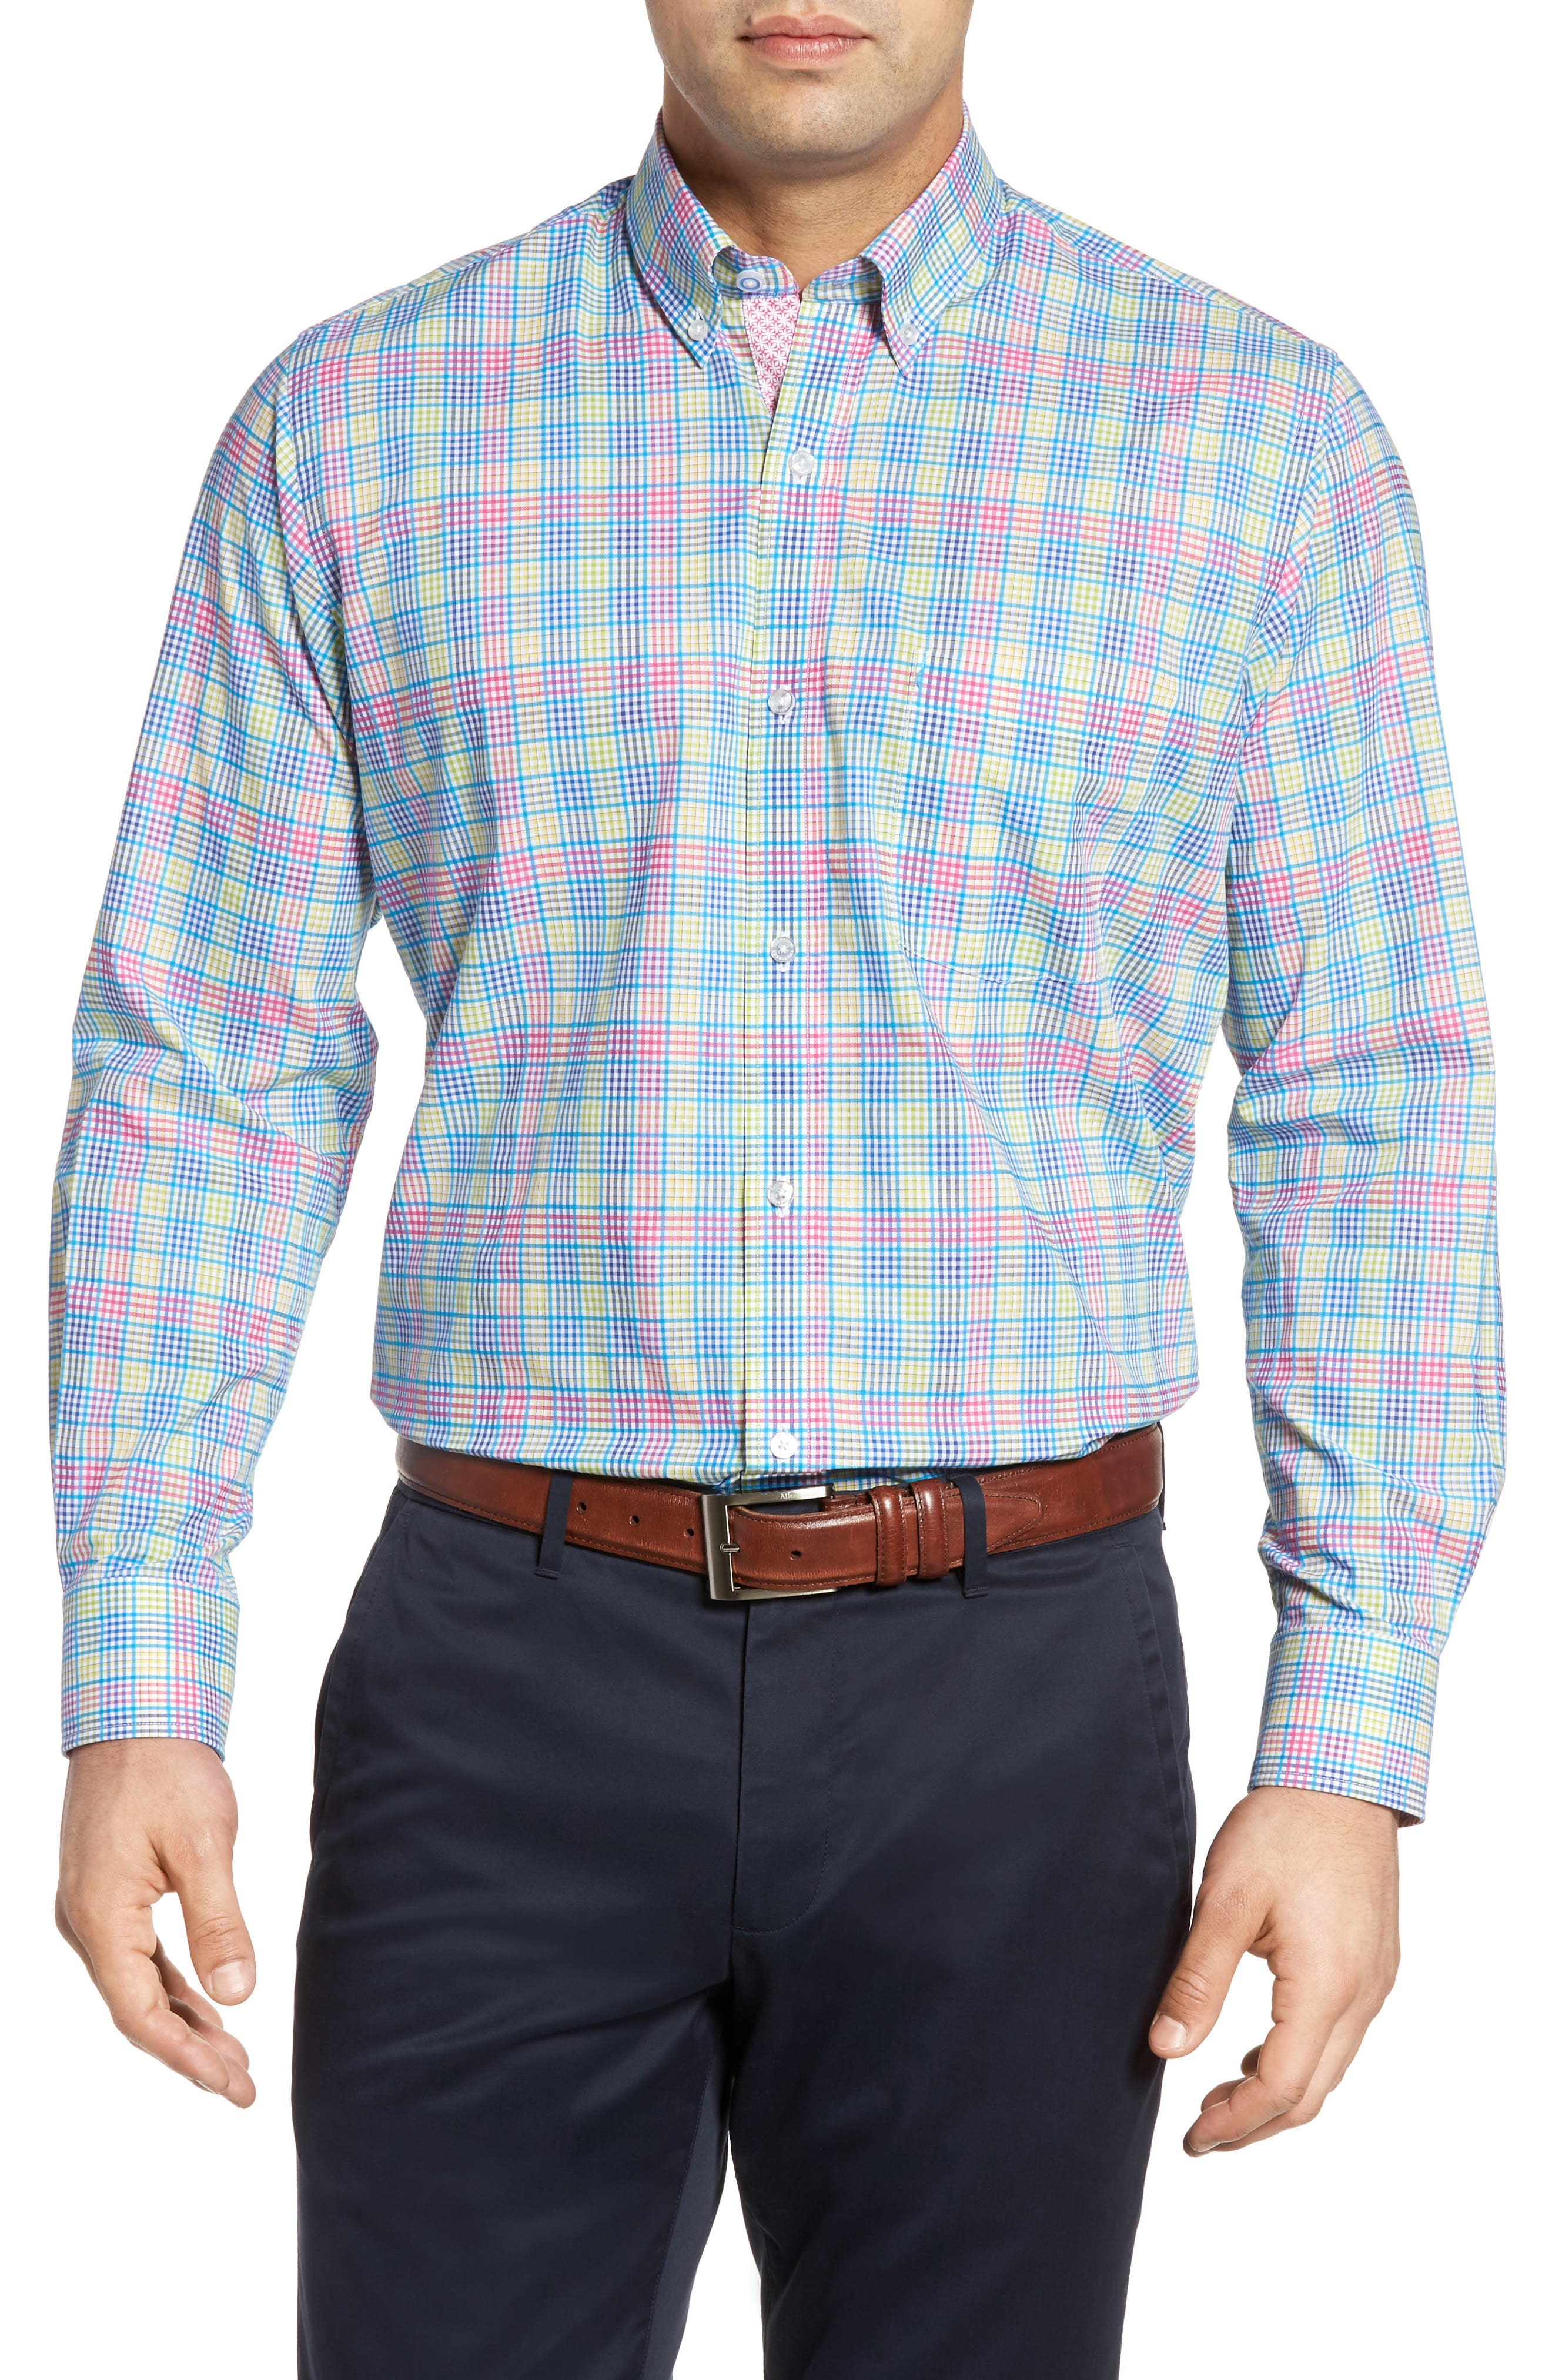 Peachleaf Sport Shirt,                             Main thumbnail 1, color,                             400